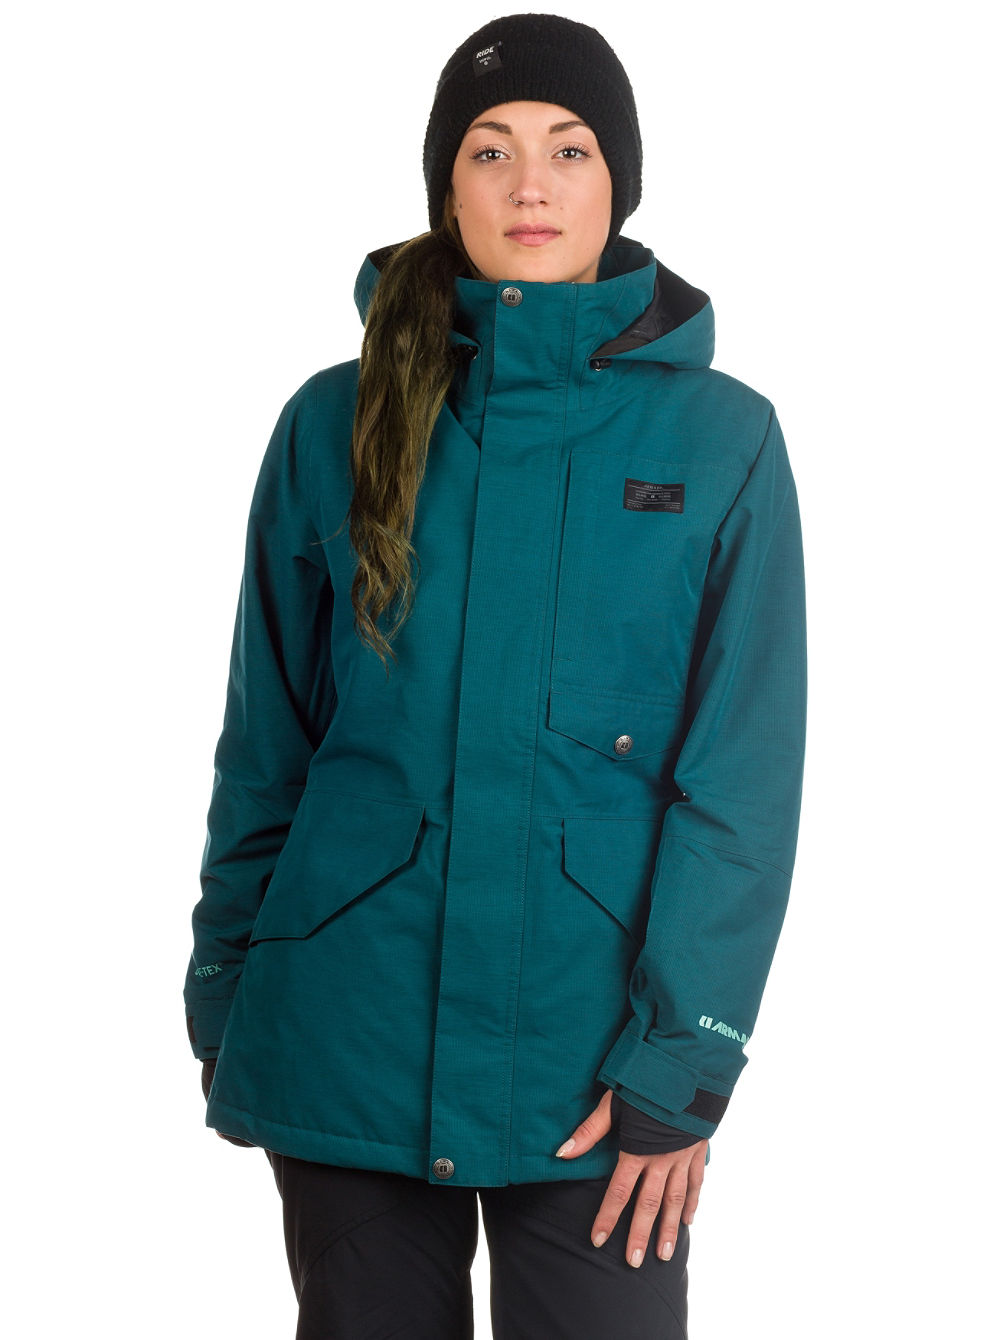 Kana Gore-Tex Insulated Jacke